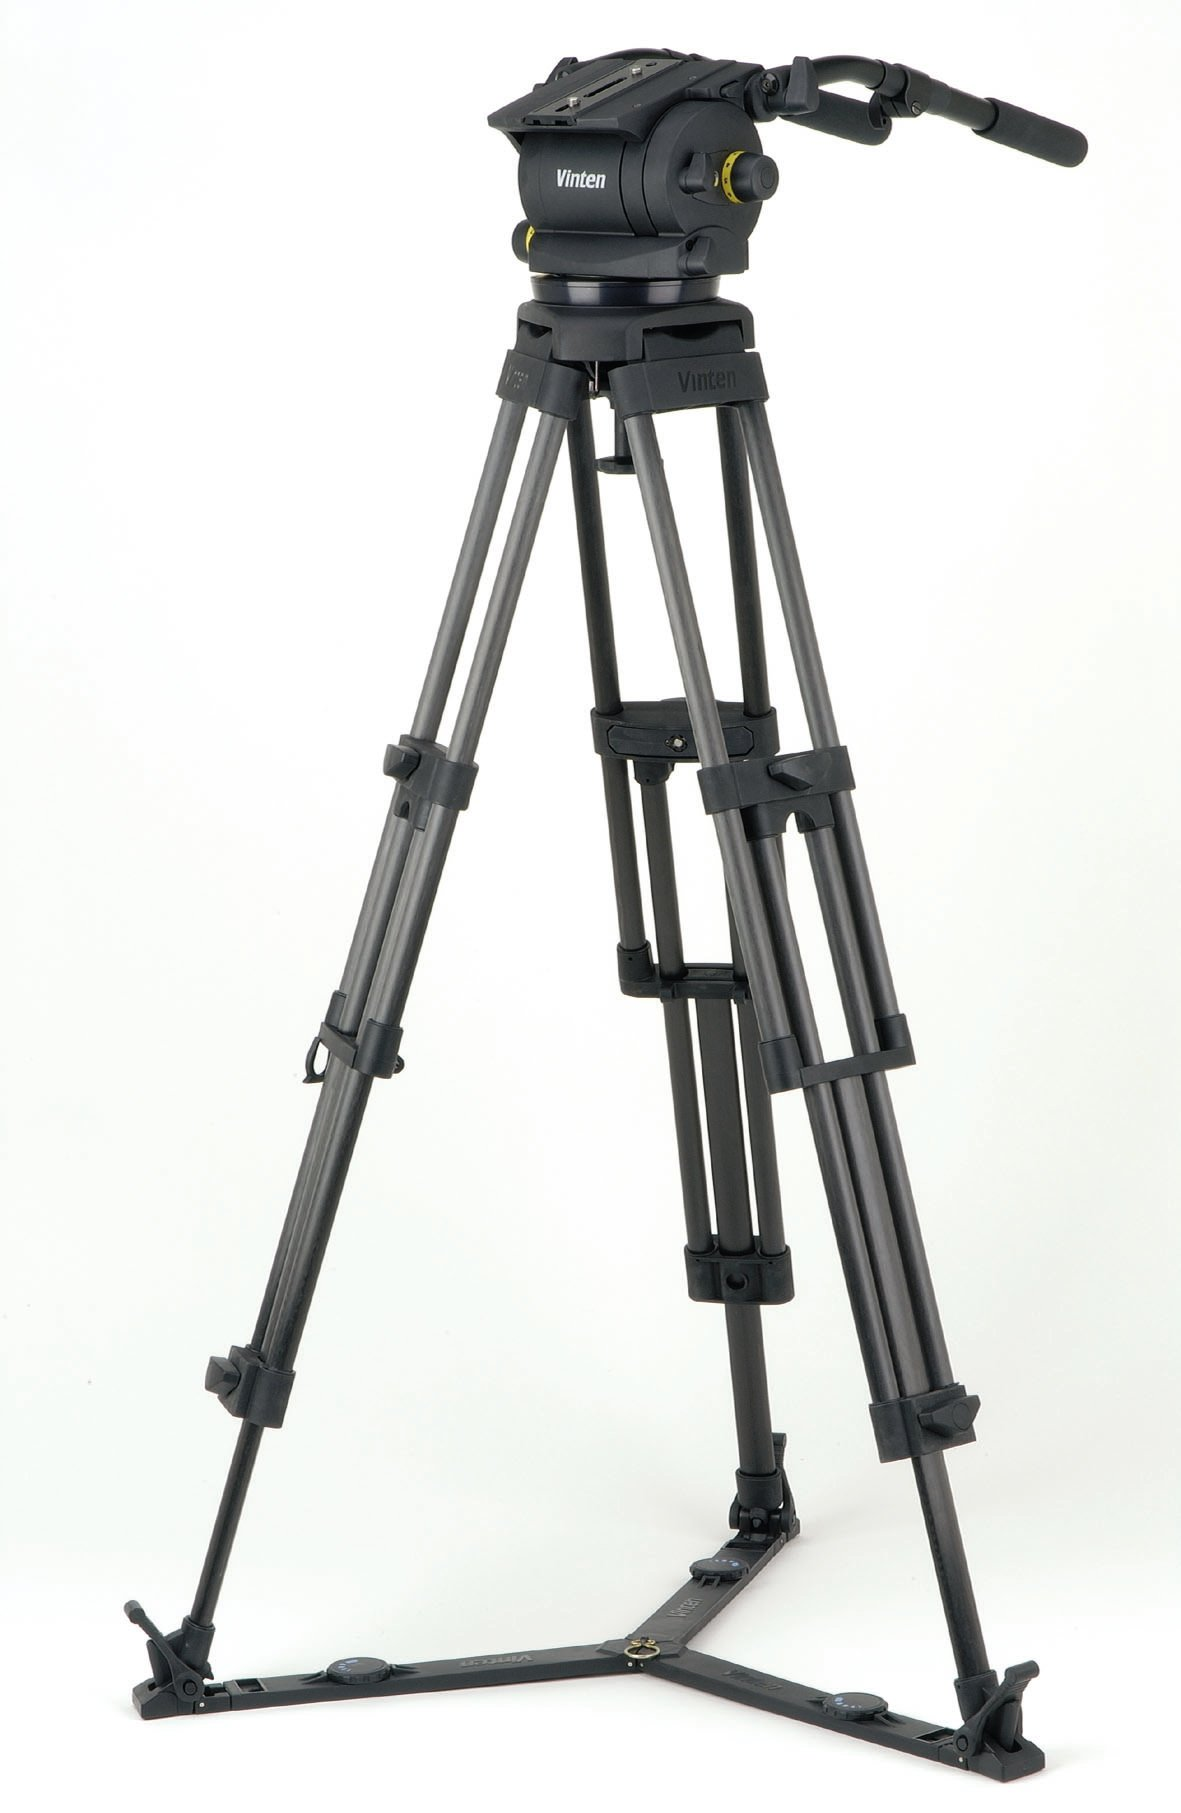 Vision 250 System with 2-Stage Carbon Fibre Pozi-Loc Tripod, 2 Pan Bars, Ground Spreader and Soft Case